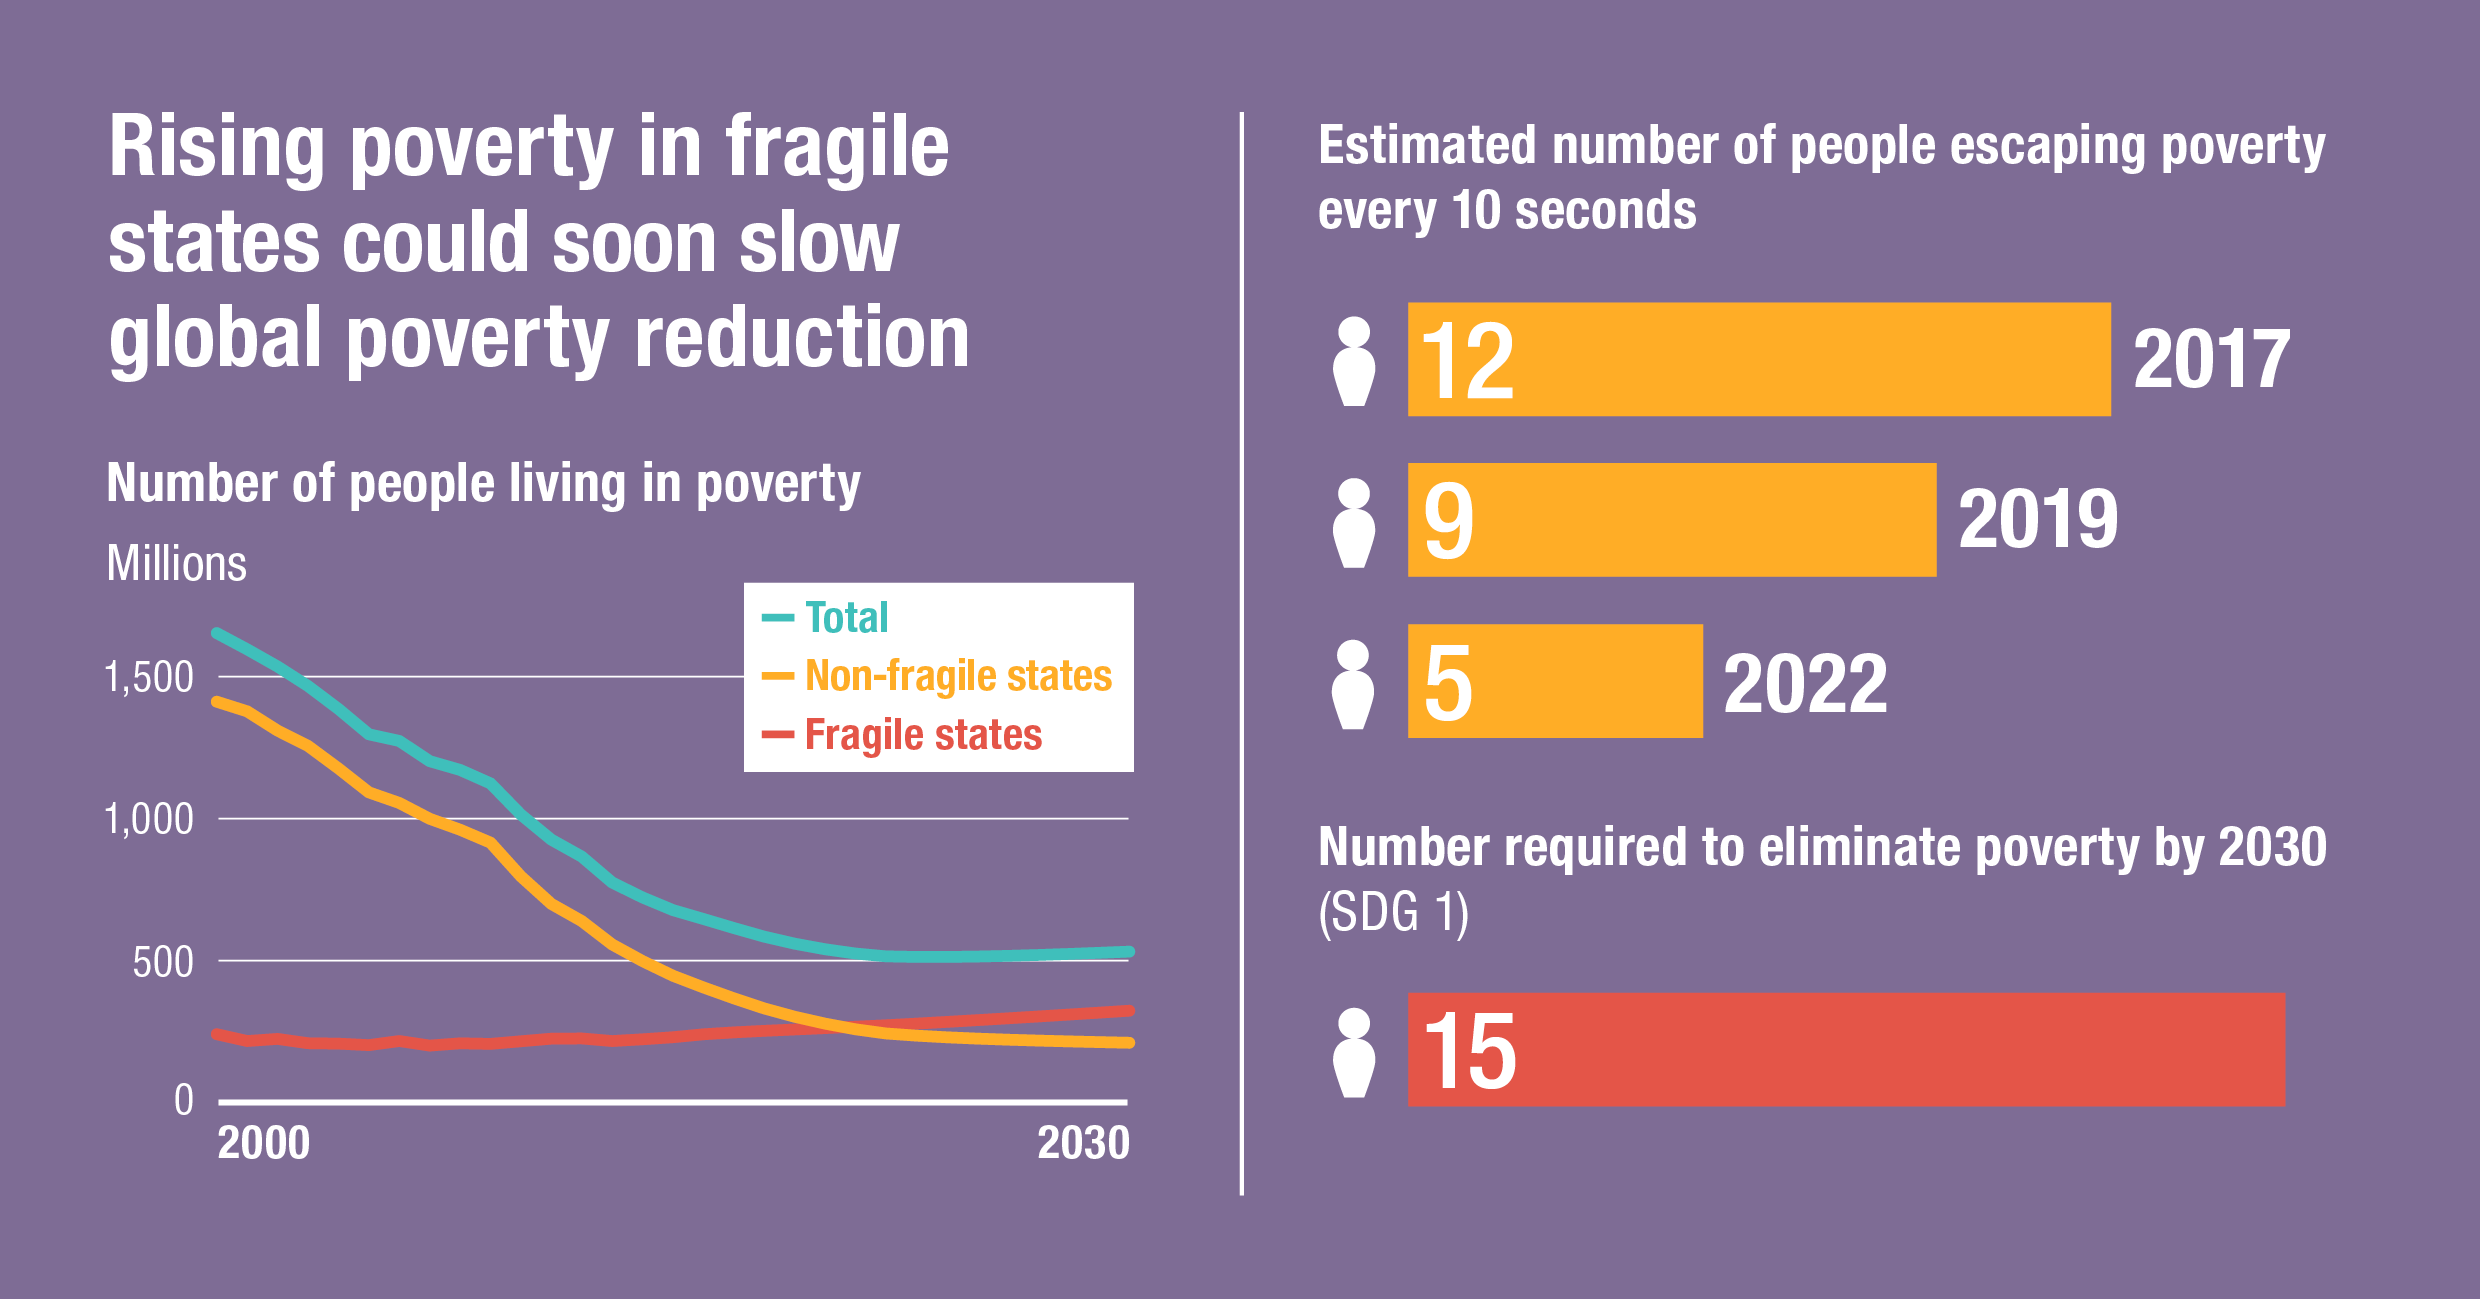 Rising poverty in fragile states could soon slow global poverty reduction